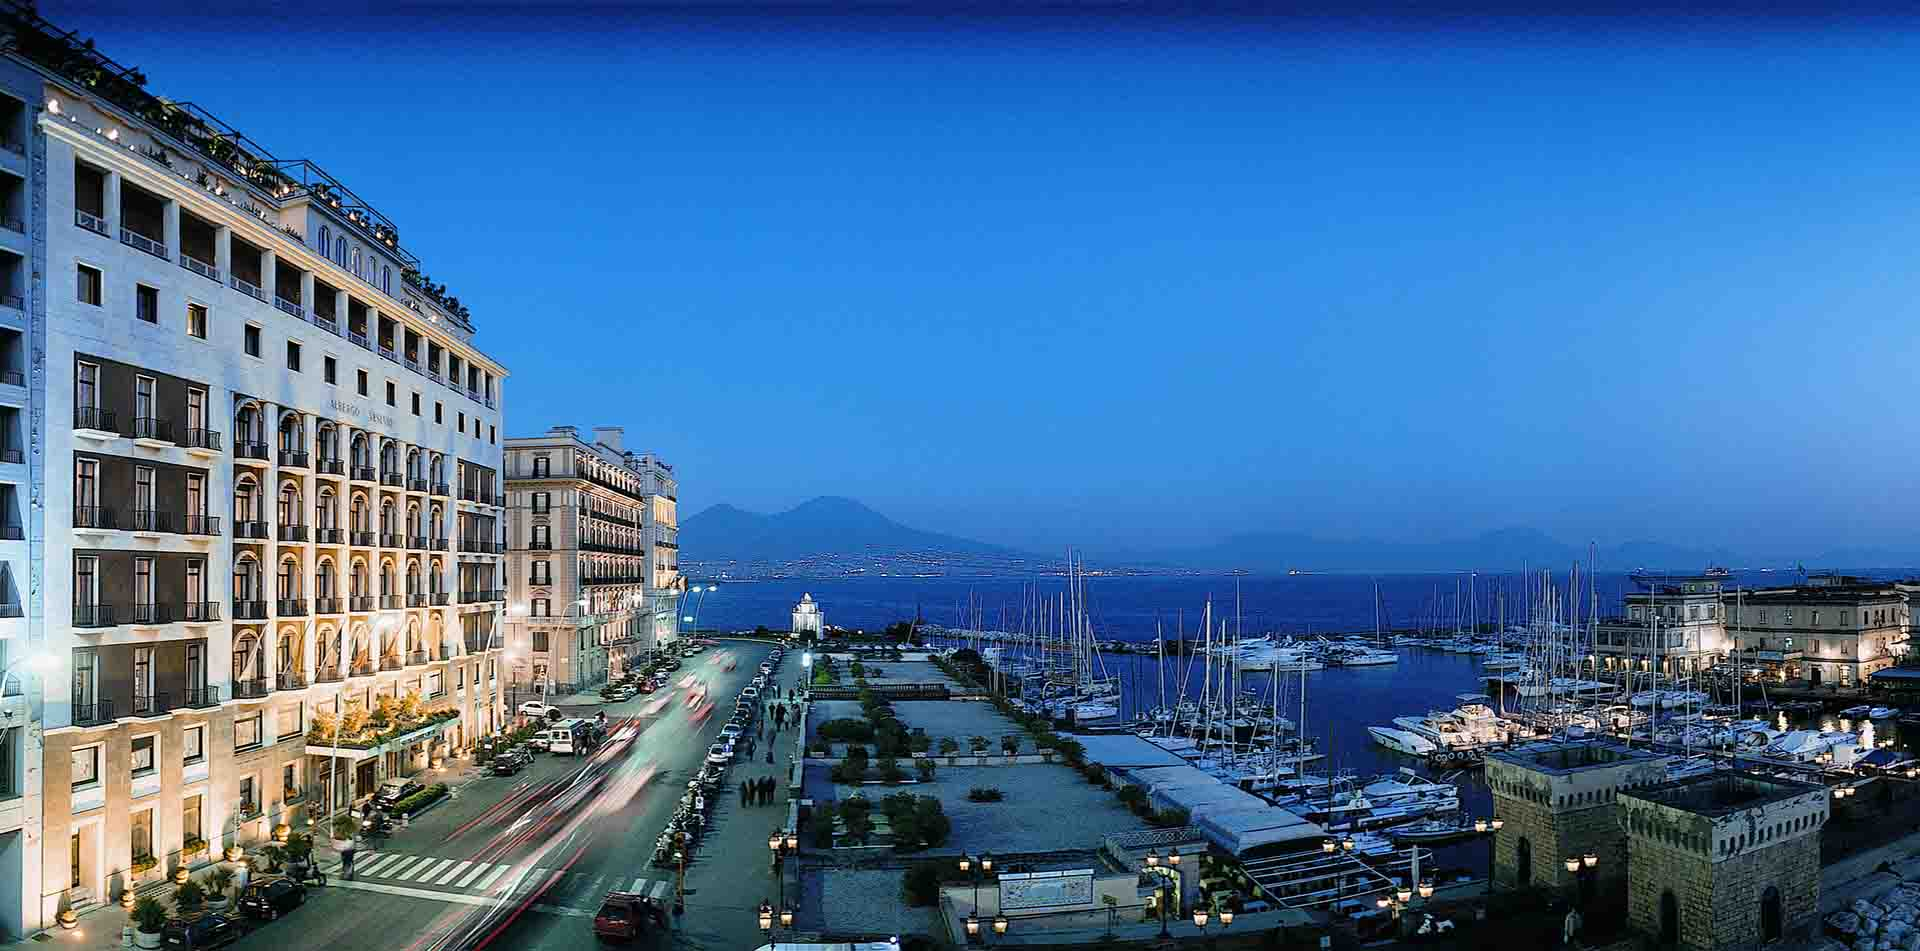 Europe Italy Amalfi Coast Naples Grand Hotel Vesuvio sailboats by the bay at night - luxury vacation destinations